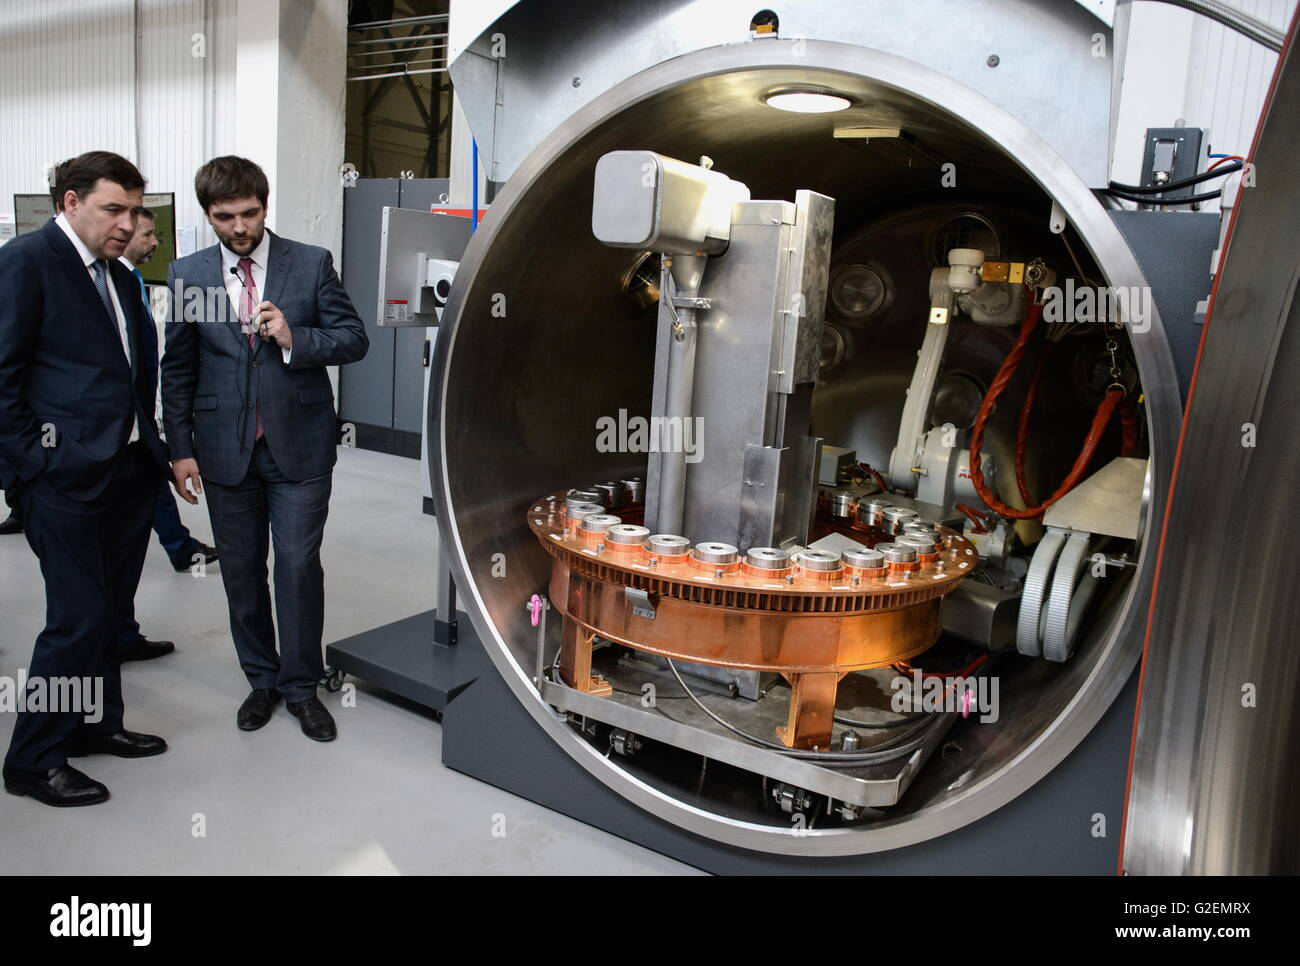 YEKATERINBURG, RUSSIA - MAY 20, 2016: Evgeny Kuivashev (left), Governor of the Sverdlovsk region, at the opening - Stock Image